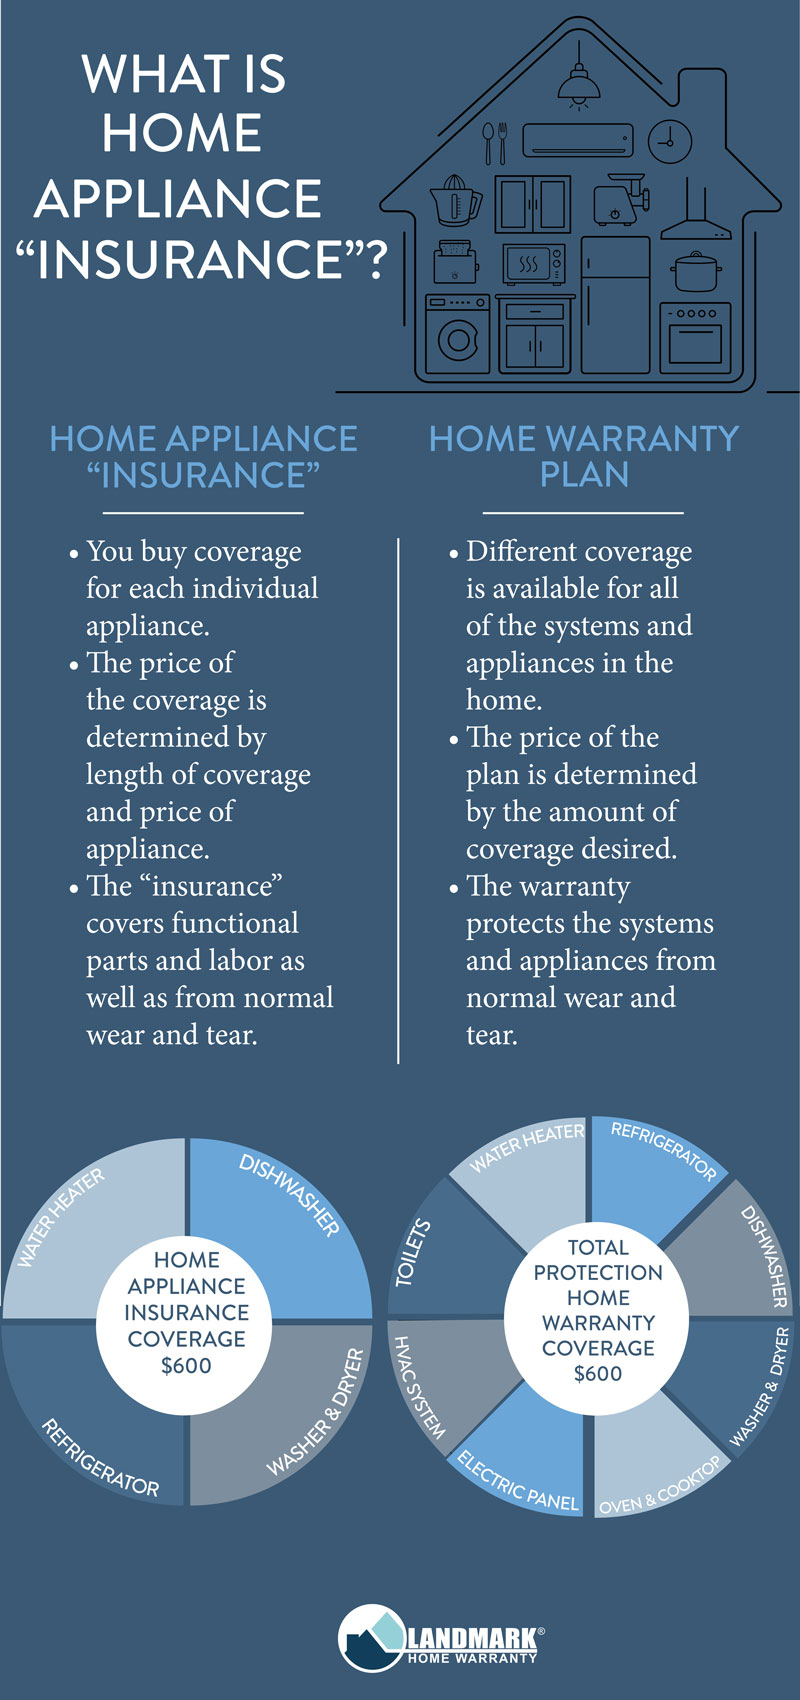 Best home warranty companies in az - Infographic Explaining What The Difference Is Between A Home Warranty Plan And A Home Applienace Insurance